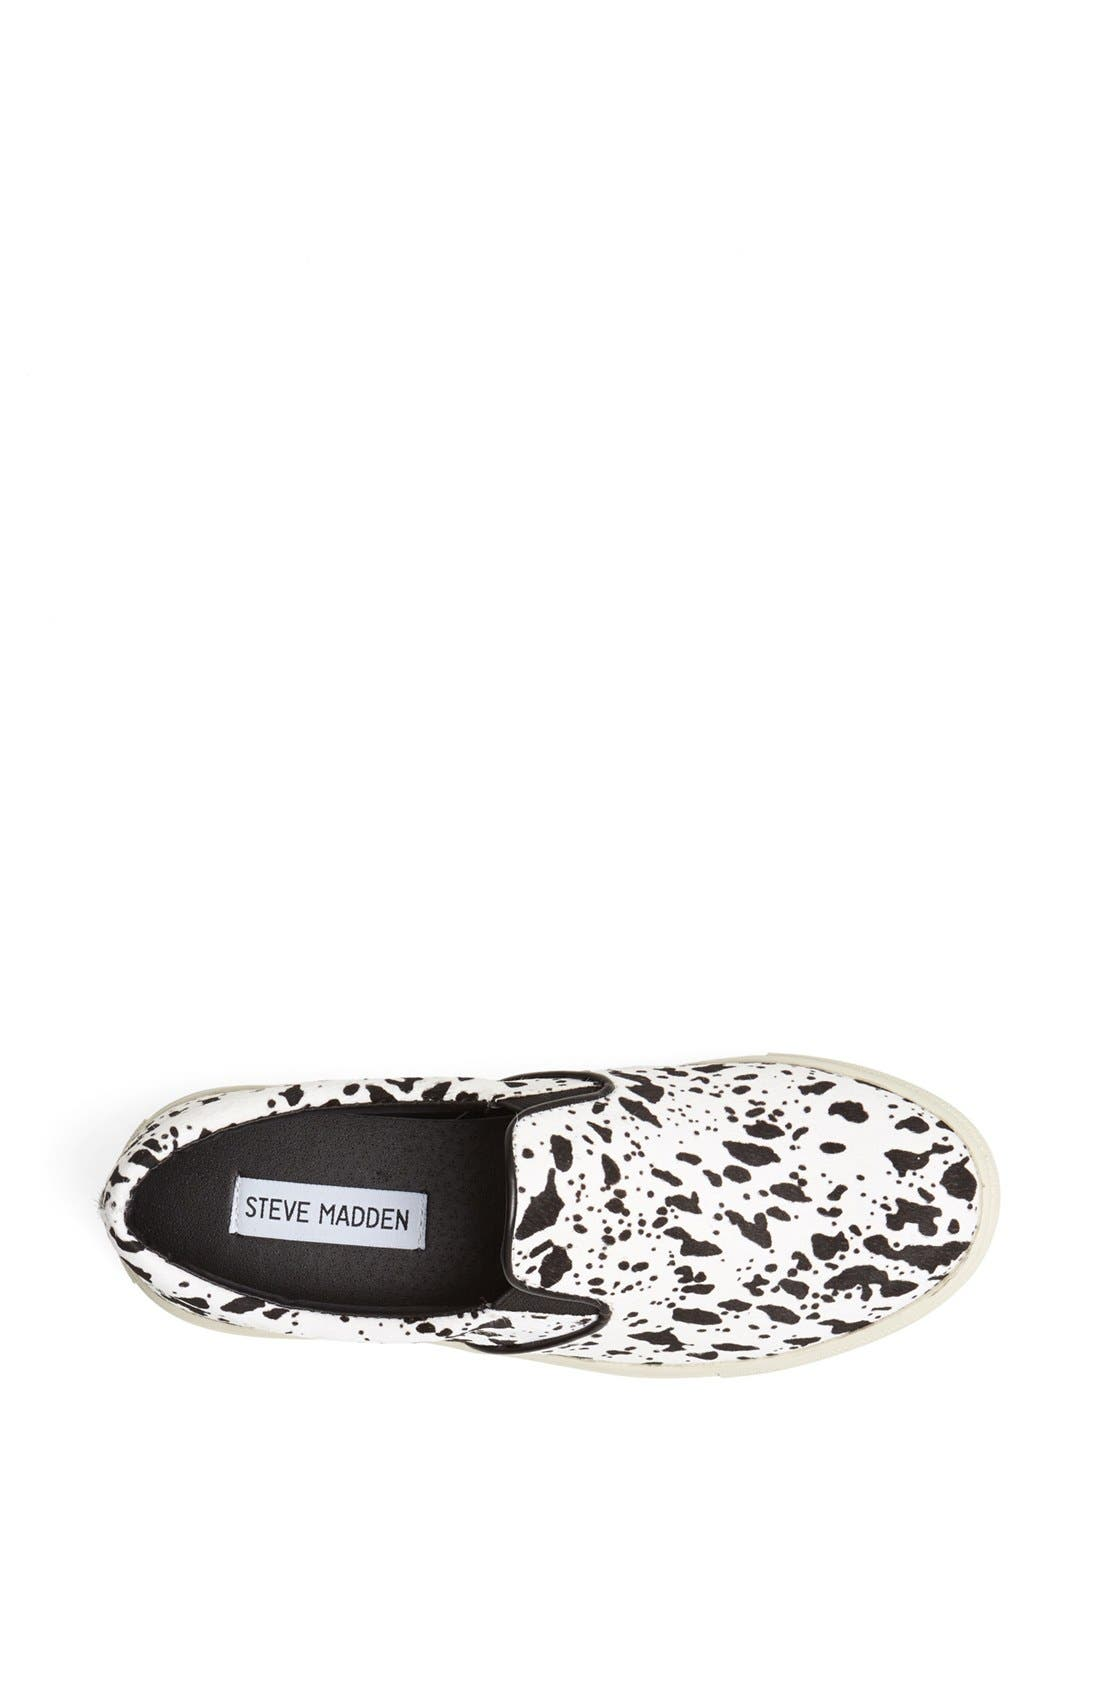 Alternate Image 3  - Steve Madden 'Ecentric' Pony Hair Flat